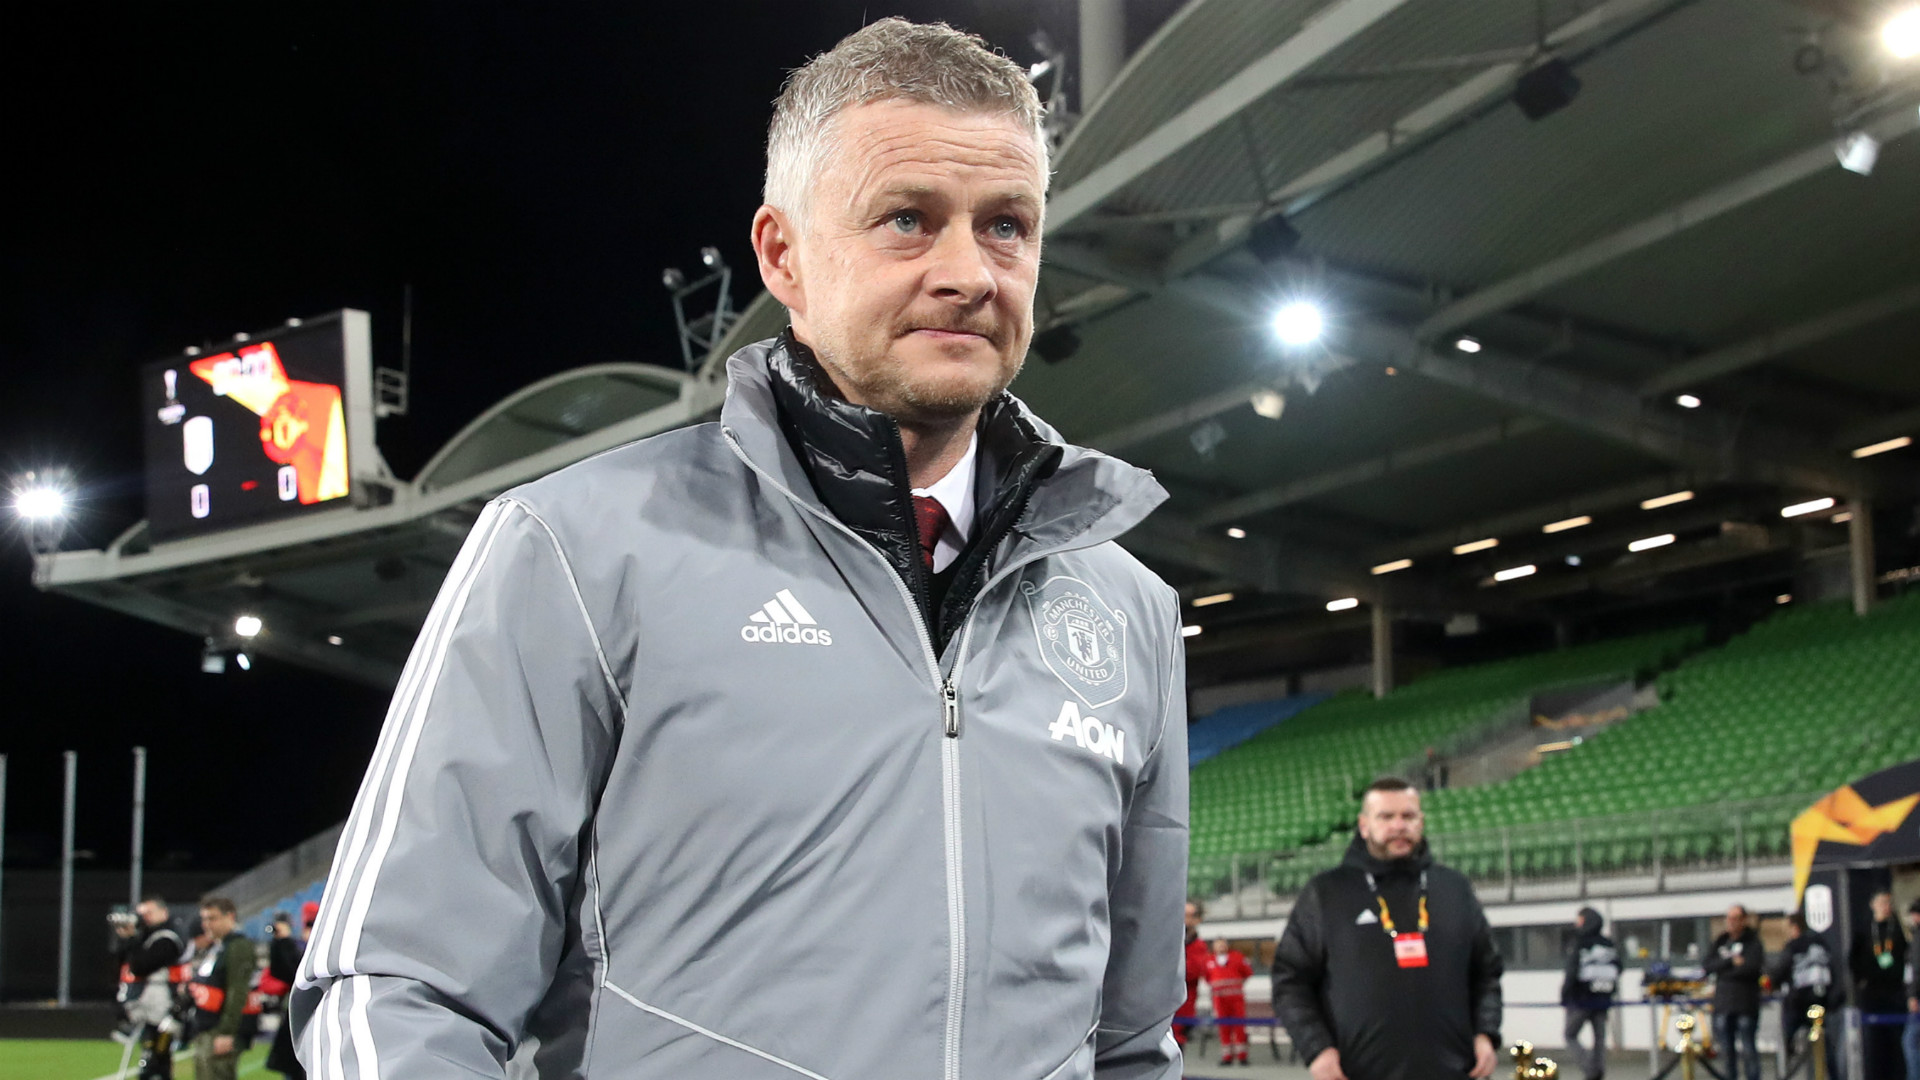 Solskjaer: Man United can 'exploit' transfer market after coronavirus shutdown